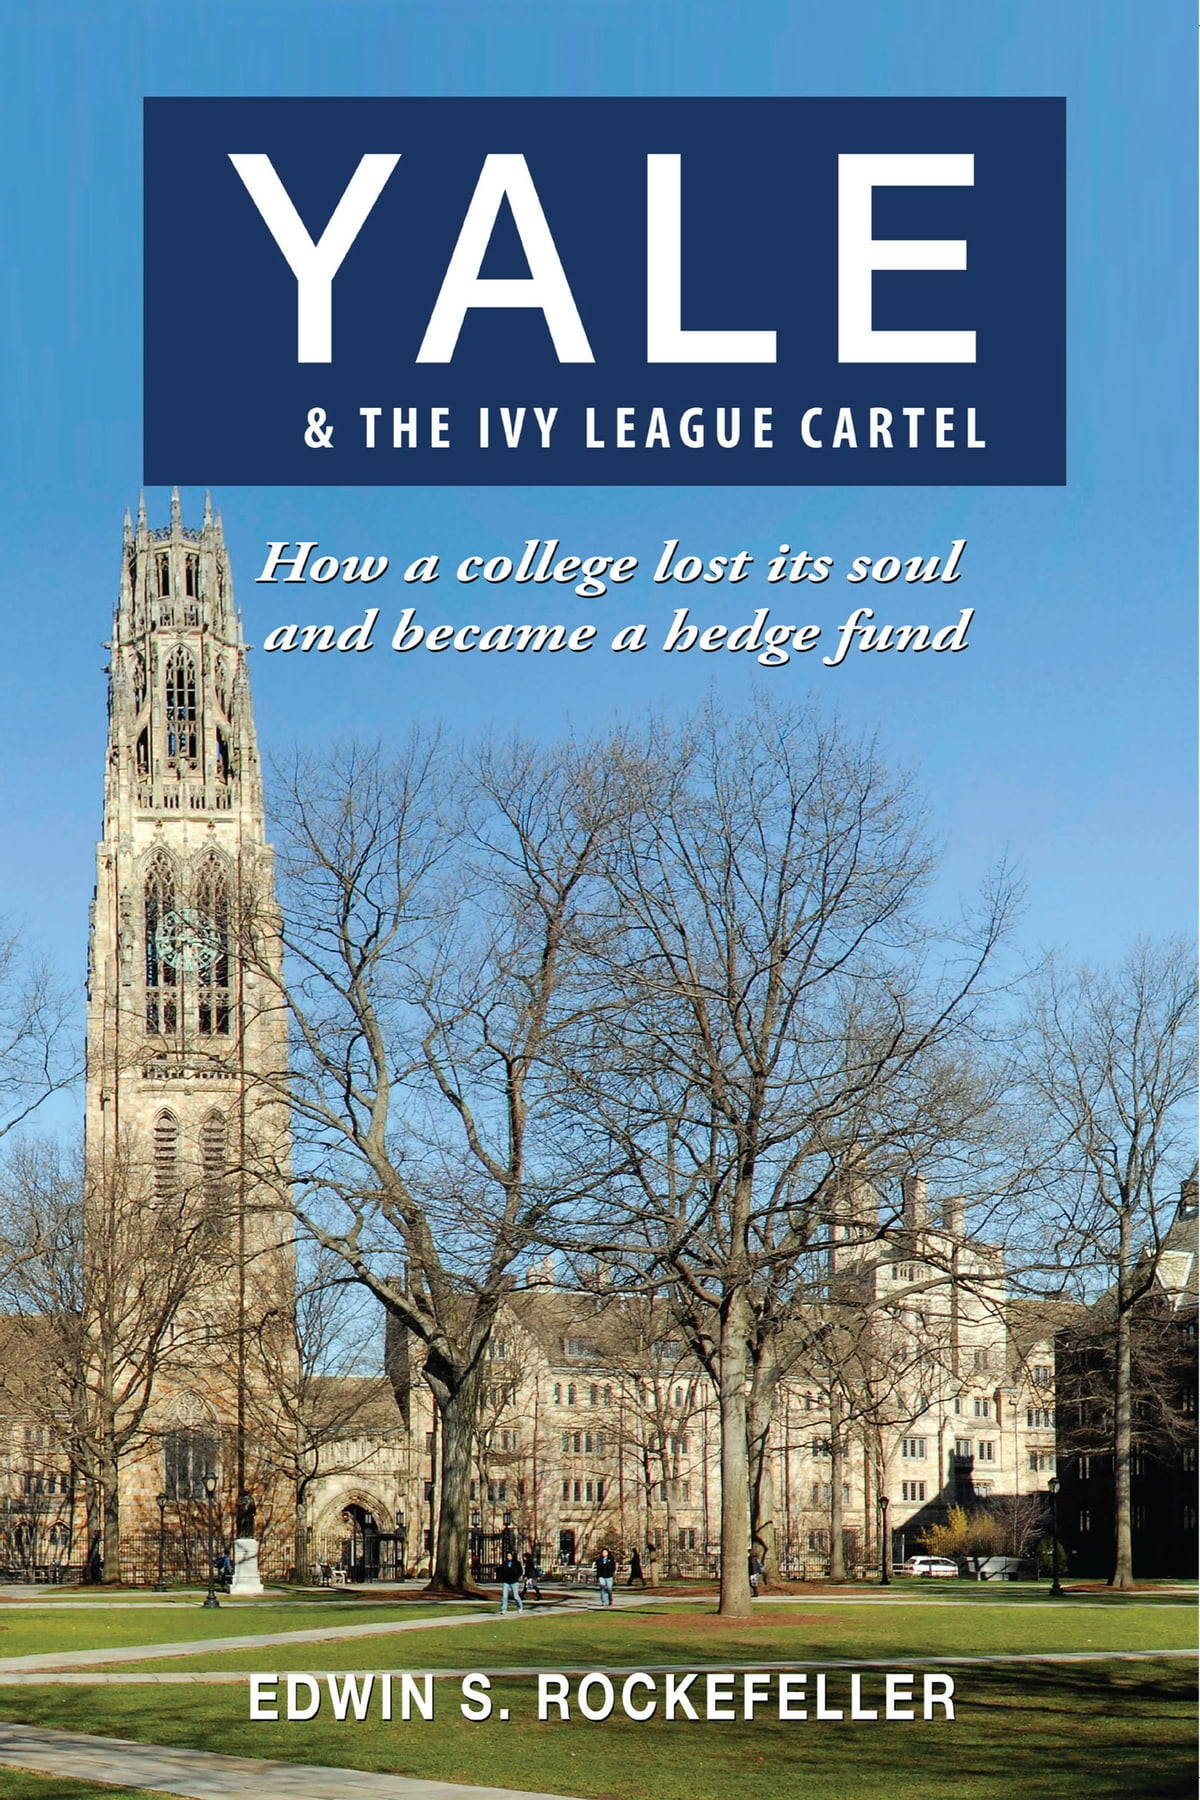 Yale & The Ivy League Cartel: How a College Lost its Soul and Became a  Hedge Fund ebook by Edwin S  Rockefeller - Rakuten Kobo